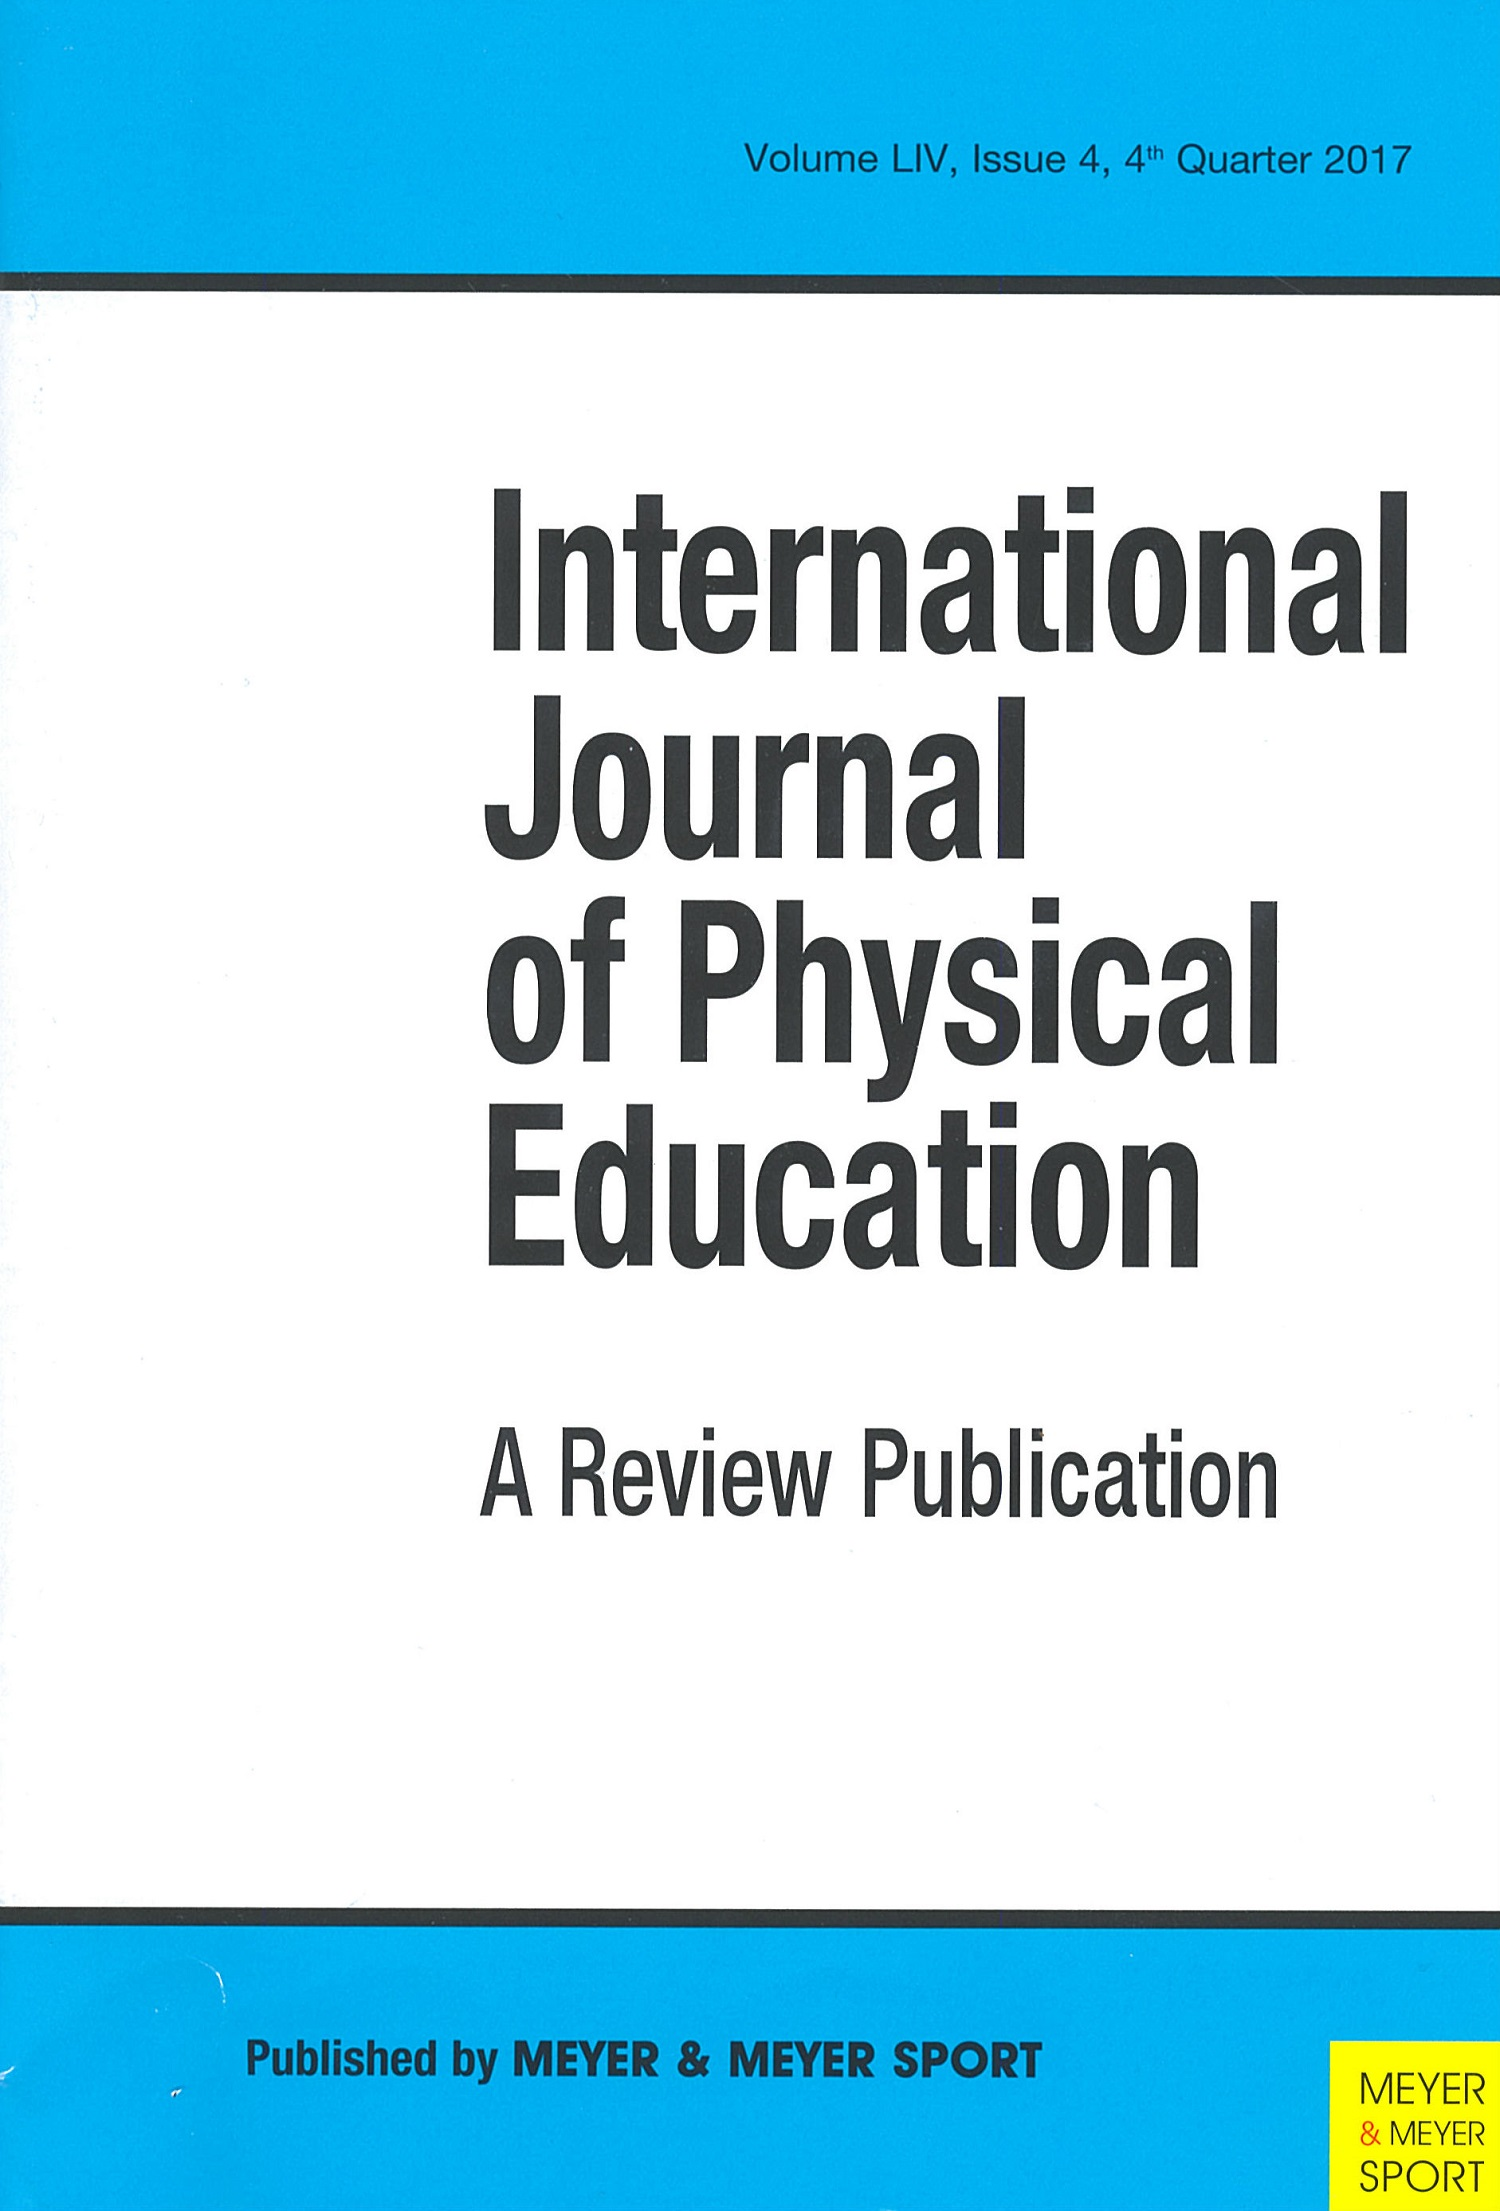 International Journal of Physical Education